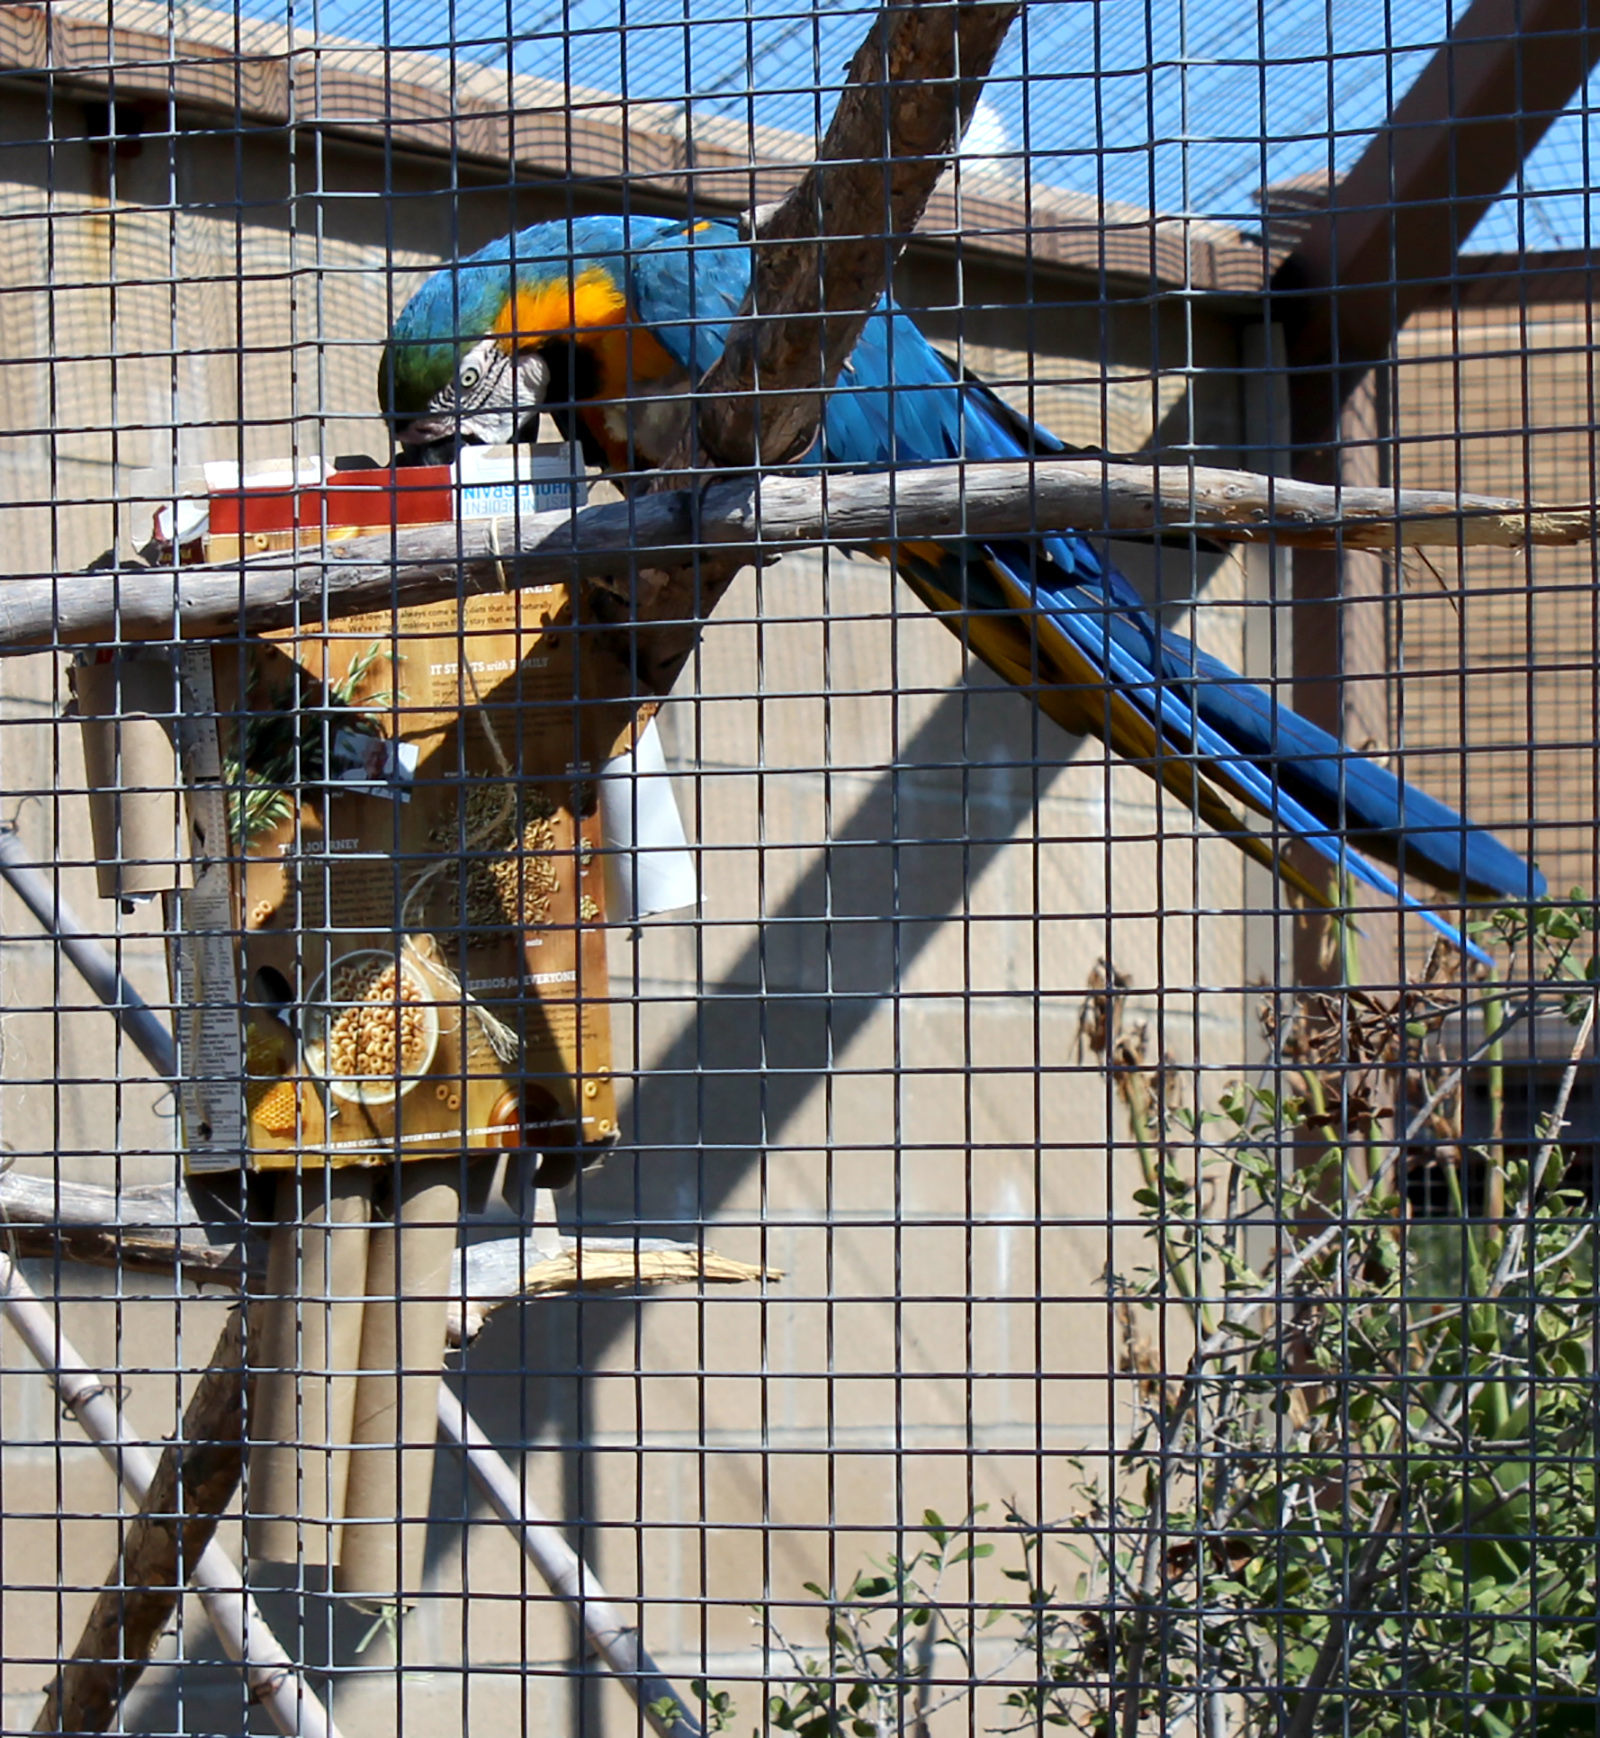 macaw plays with toy